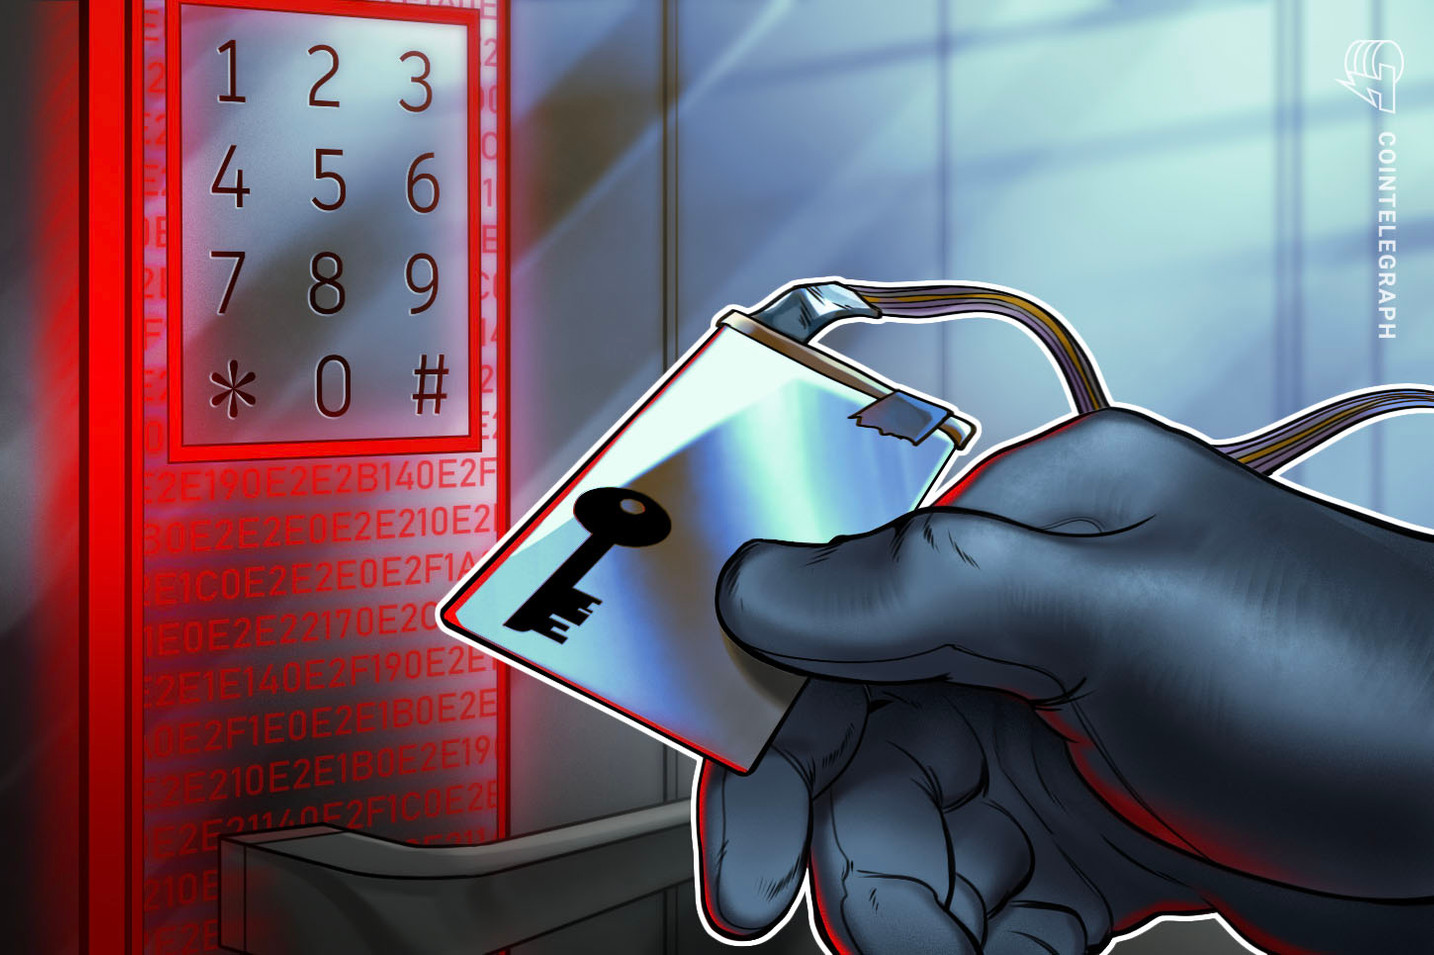 Breach at Indian exchange BuyUCoin allegedly exposes 325K users' personal data